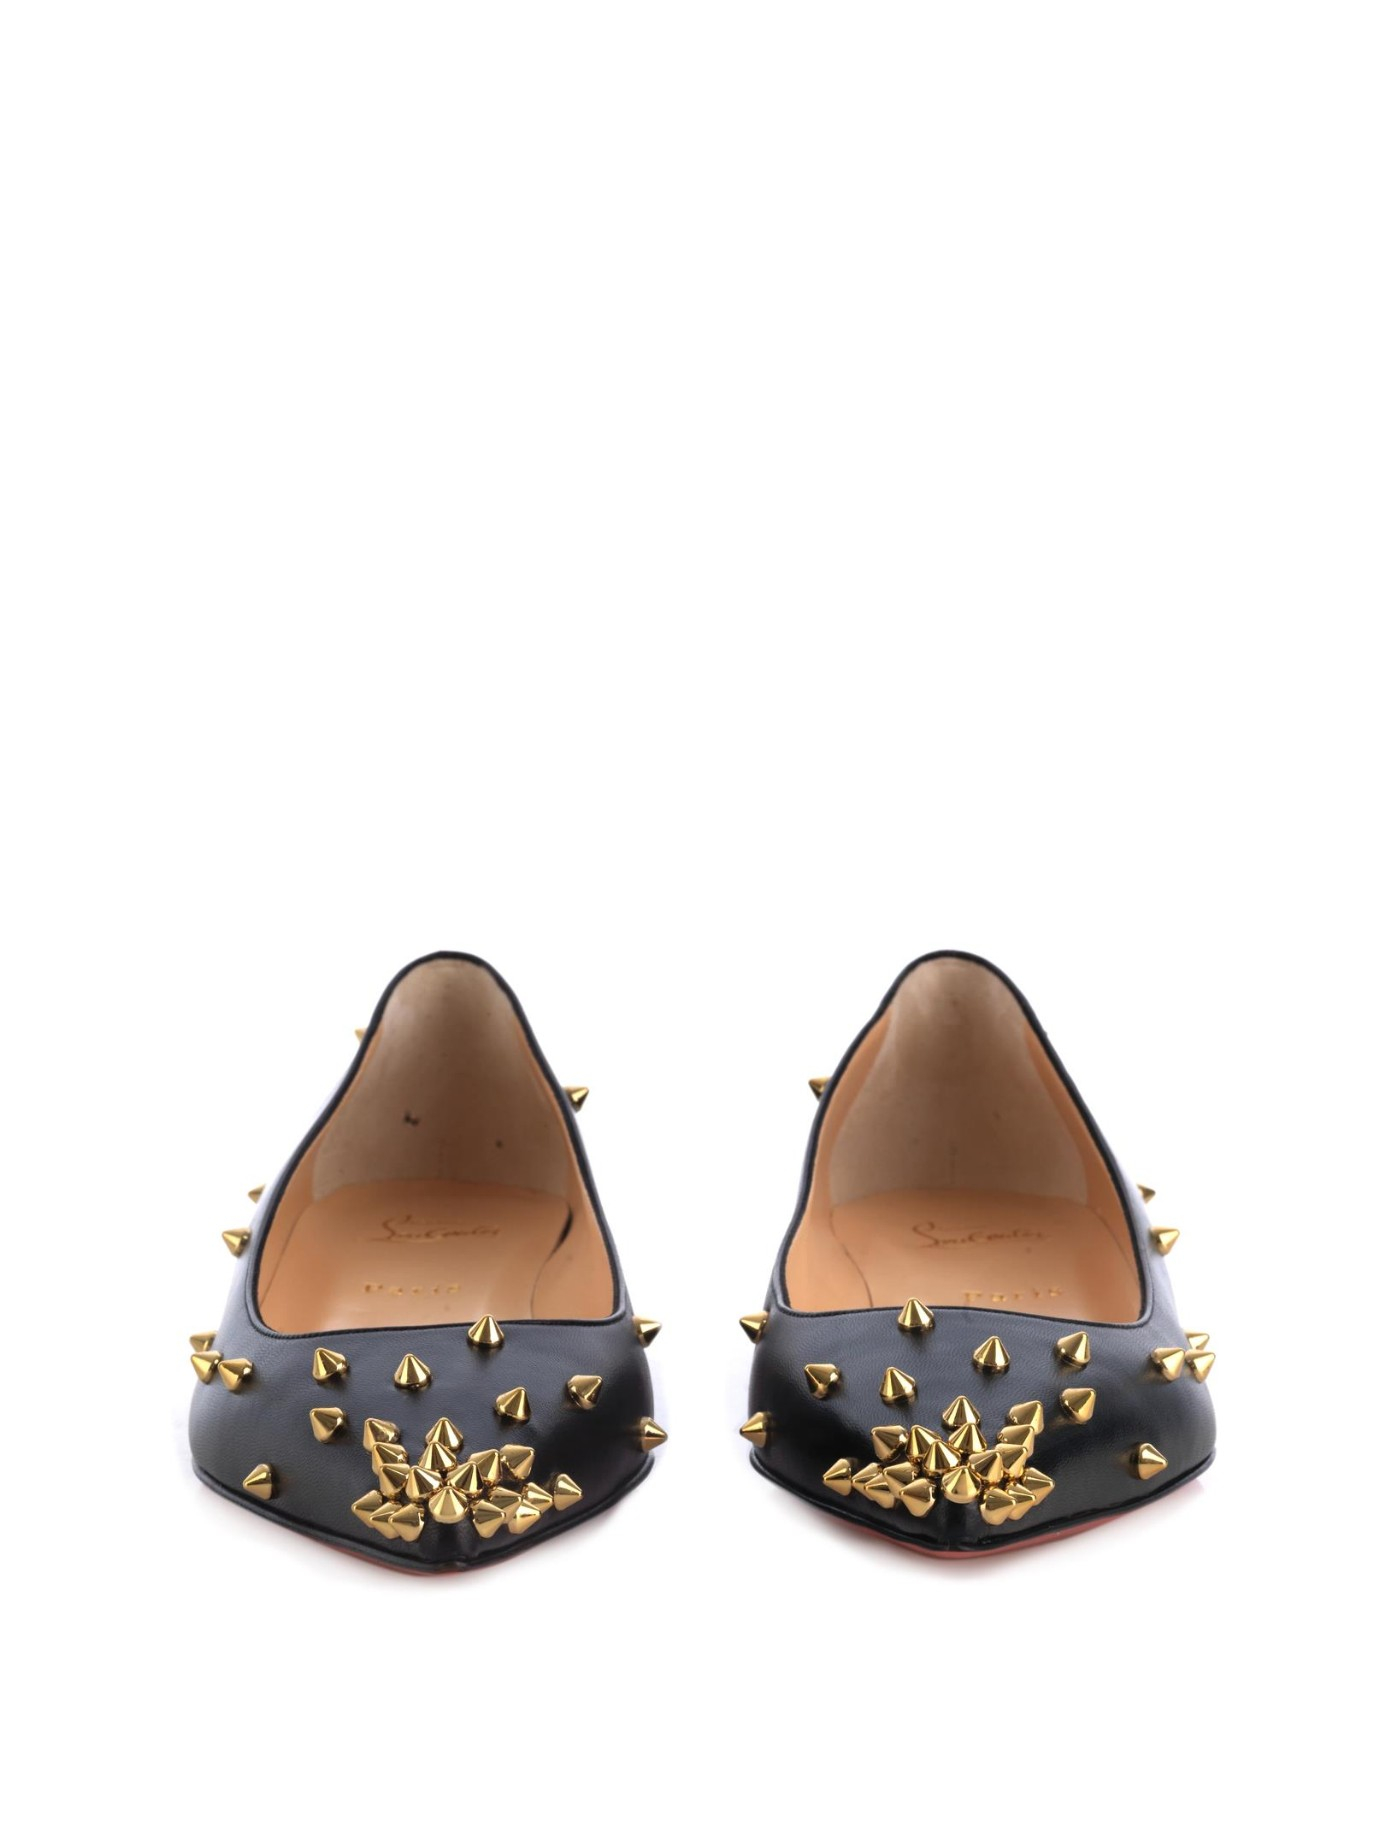 Christian louboutin Degraspike Stud-Embellished Flats in Black ...